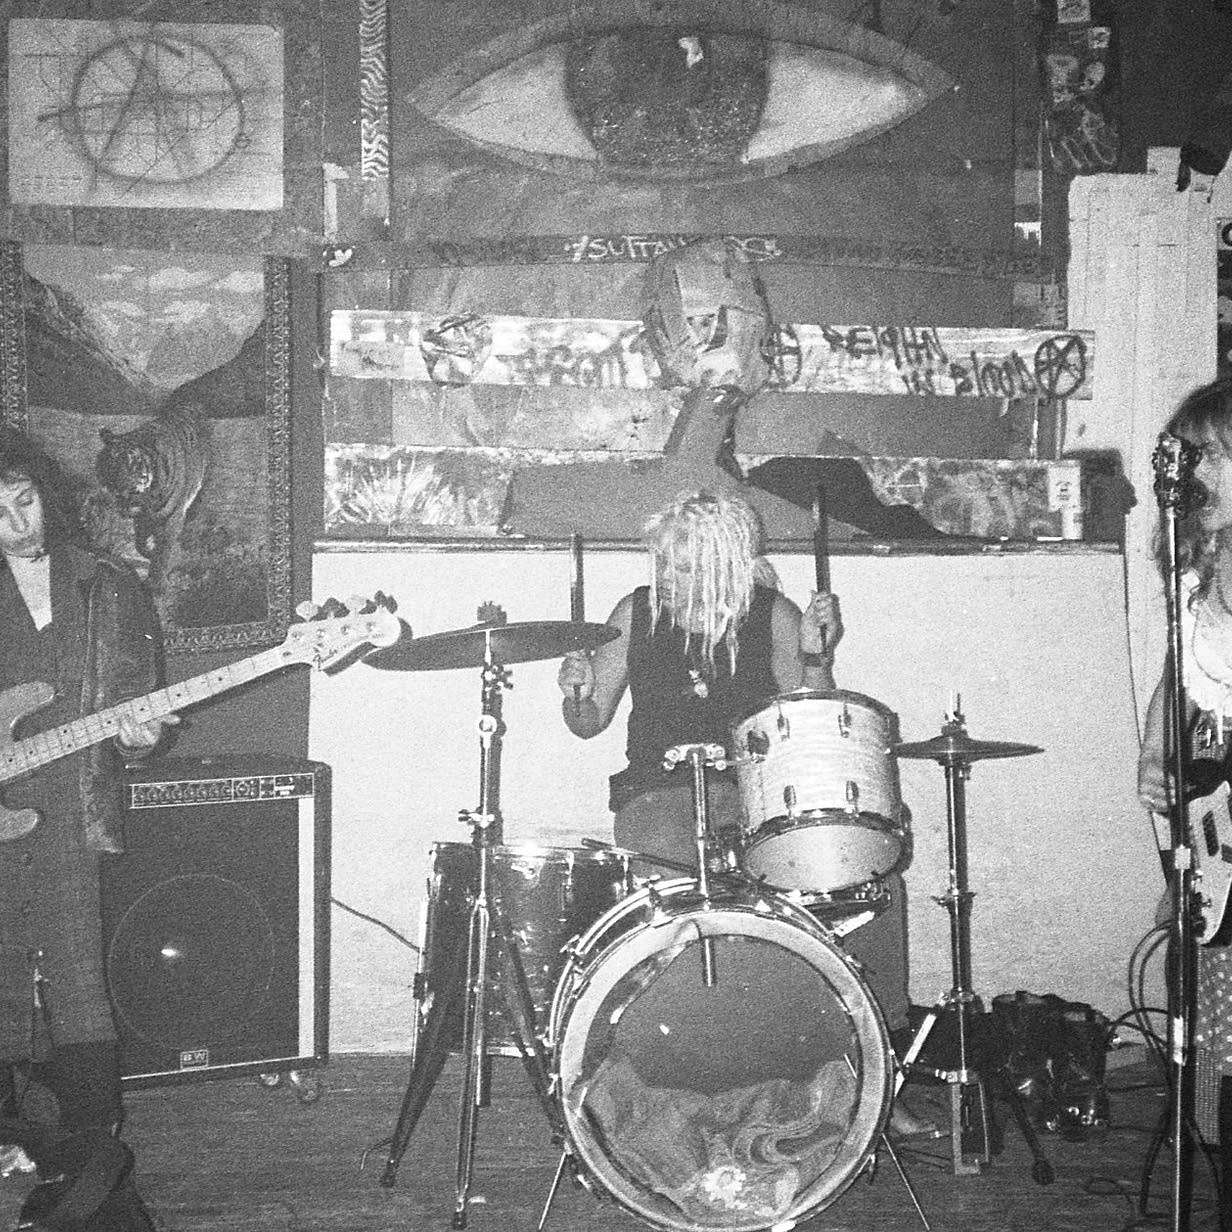 Babes in Toyland in 1989